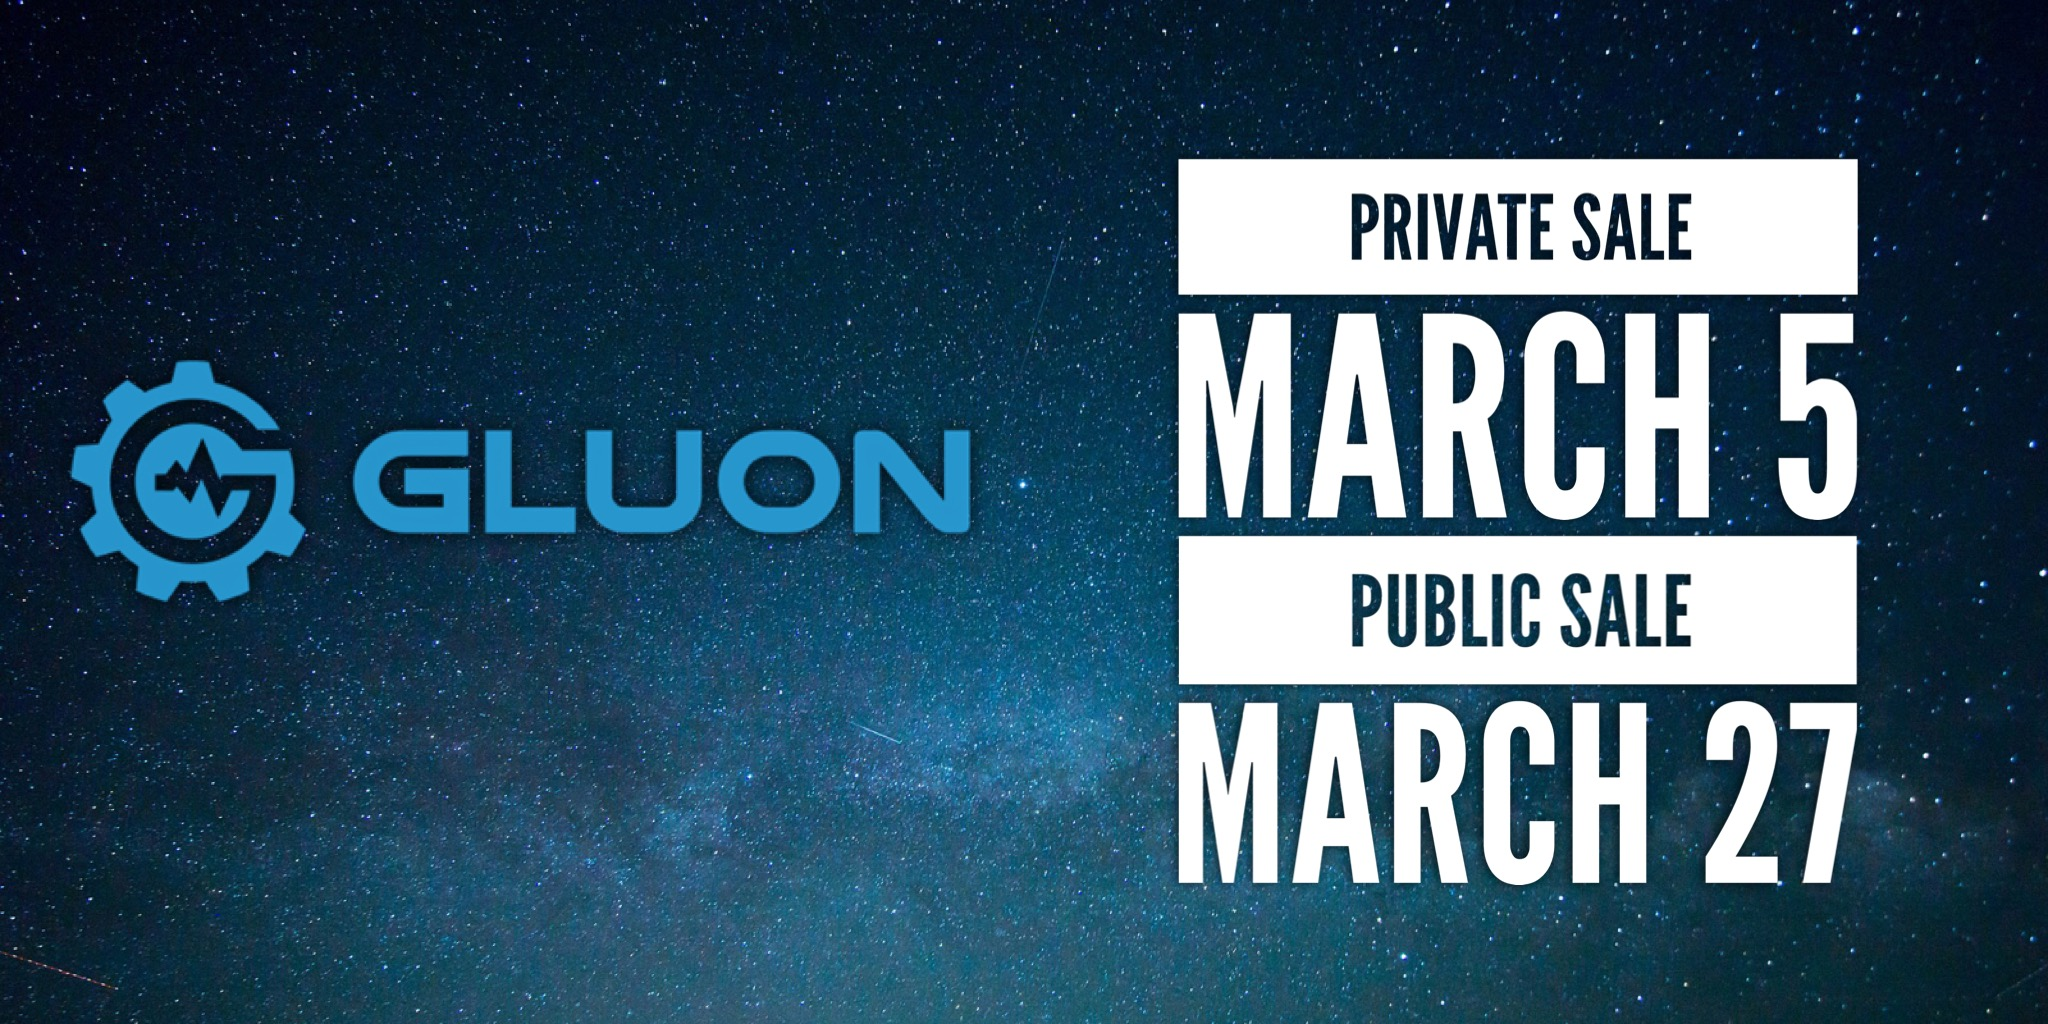 Gluon launching it's ICO on March 27. Don't miss out.